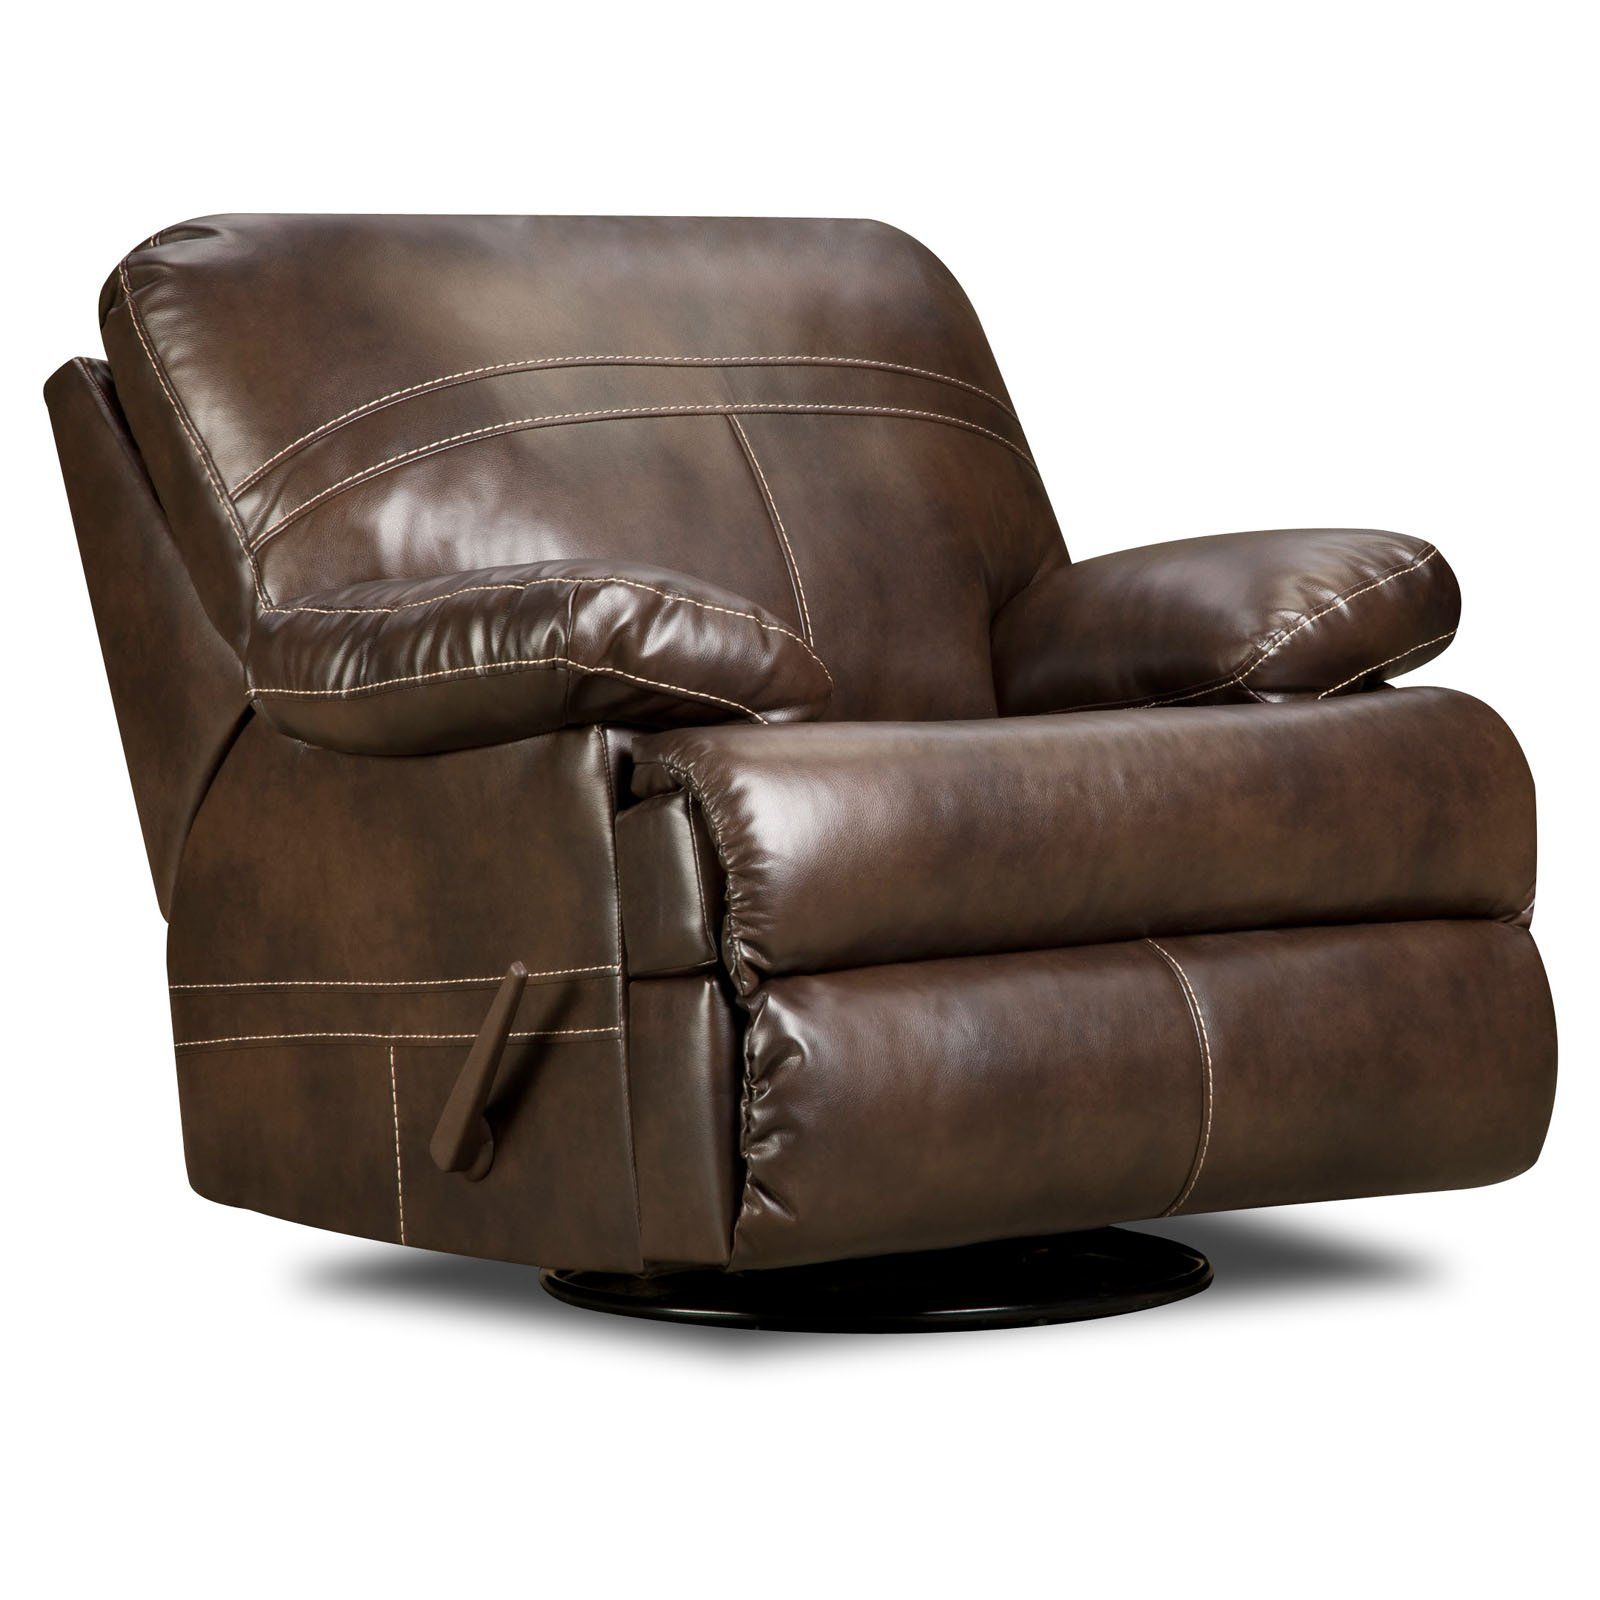 Furniture: Surprising Simmons Recliners For Contemporary Living Room Regarding Rogan Leather Cafe Latte Swivel Glider Recliners (Image 10 of 25)